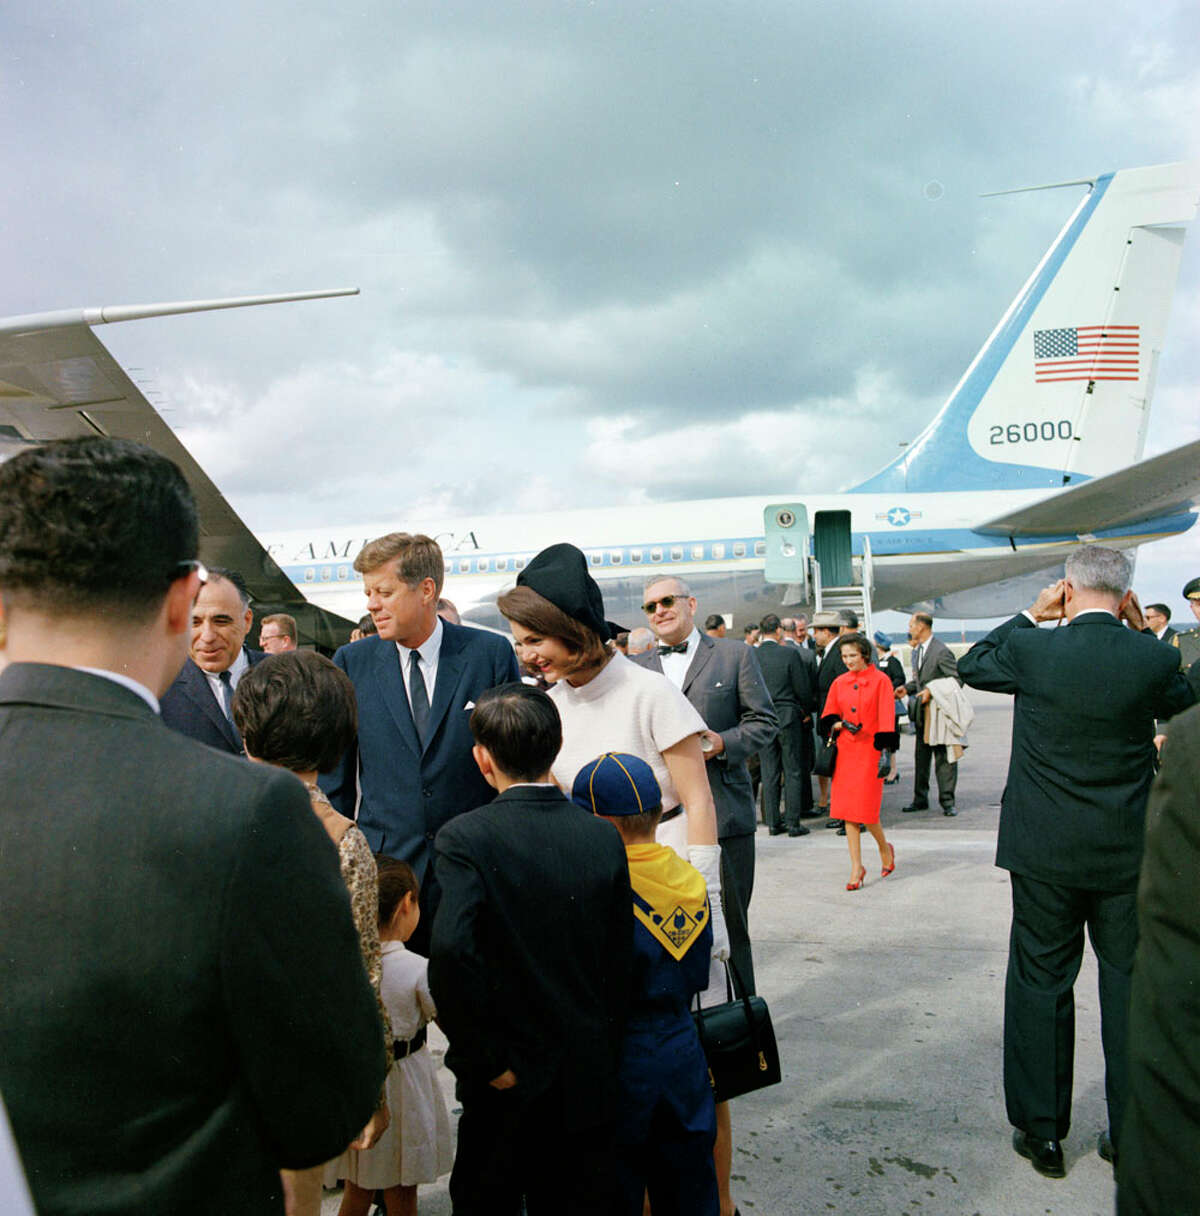 U.S. Congressman Henry B. Gonzalez, four of his children and wife Bertha (walking up behind them) were on hand when the Kennedys arrived Nov. 21, 1963 at San Antonio International Airport. All Photos Courtesy of Creative Differences production company. ST-C420-30-63 21 November 1963 Trip to Texas: San Antonio: Arrival at San Antonio International Airport Please credit